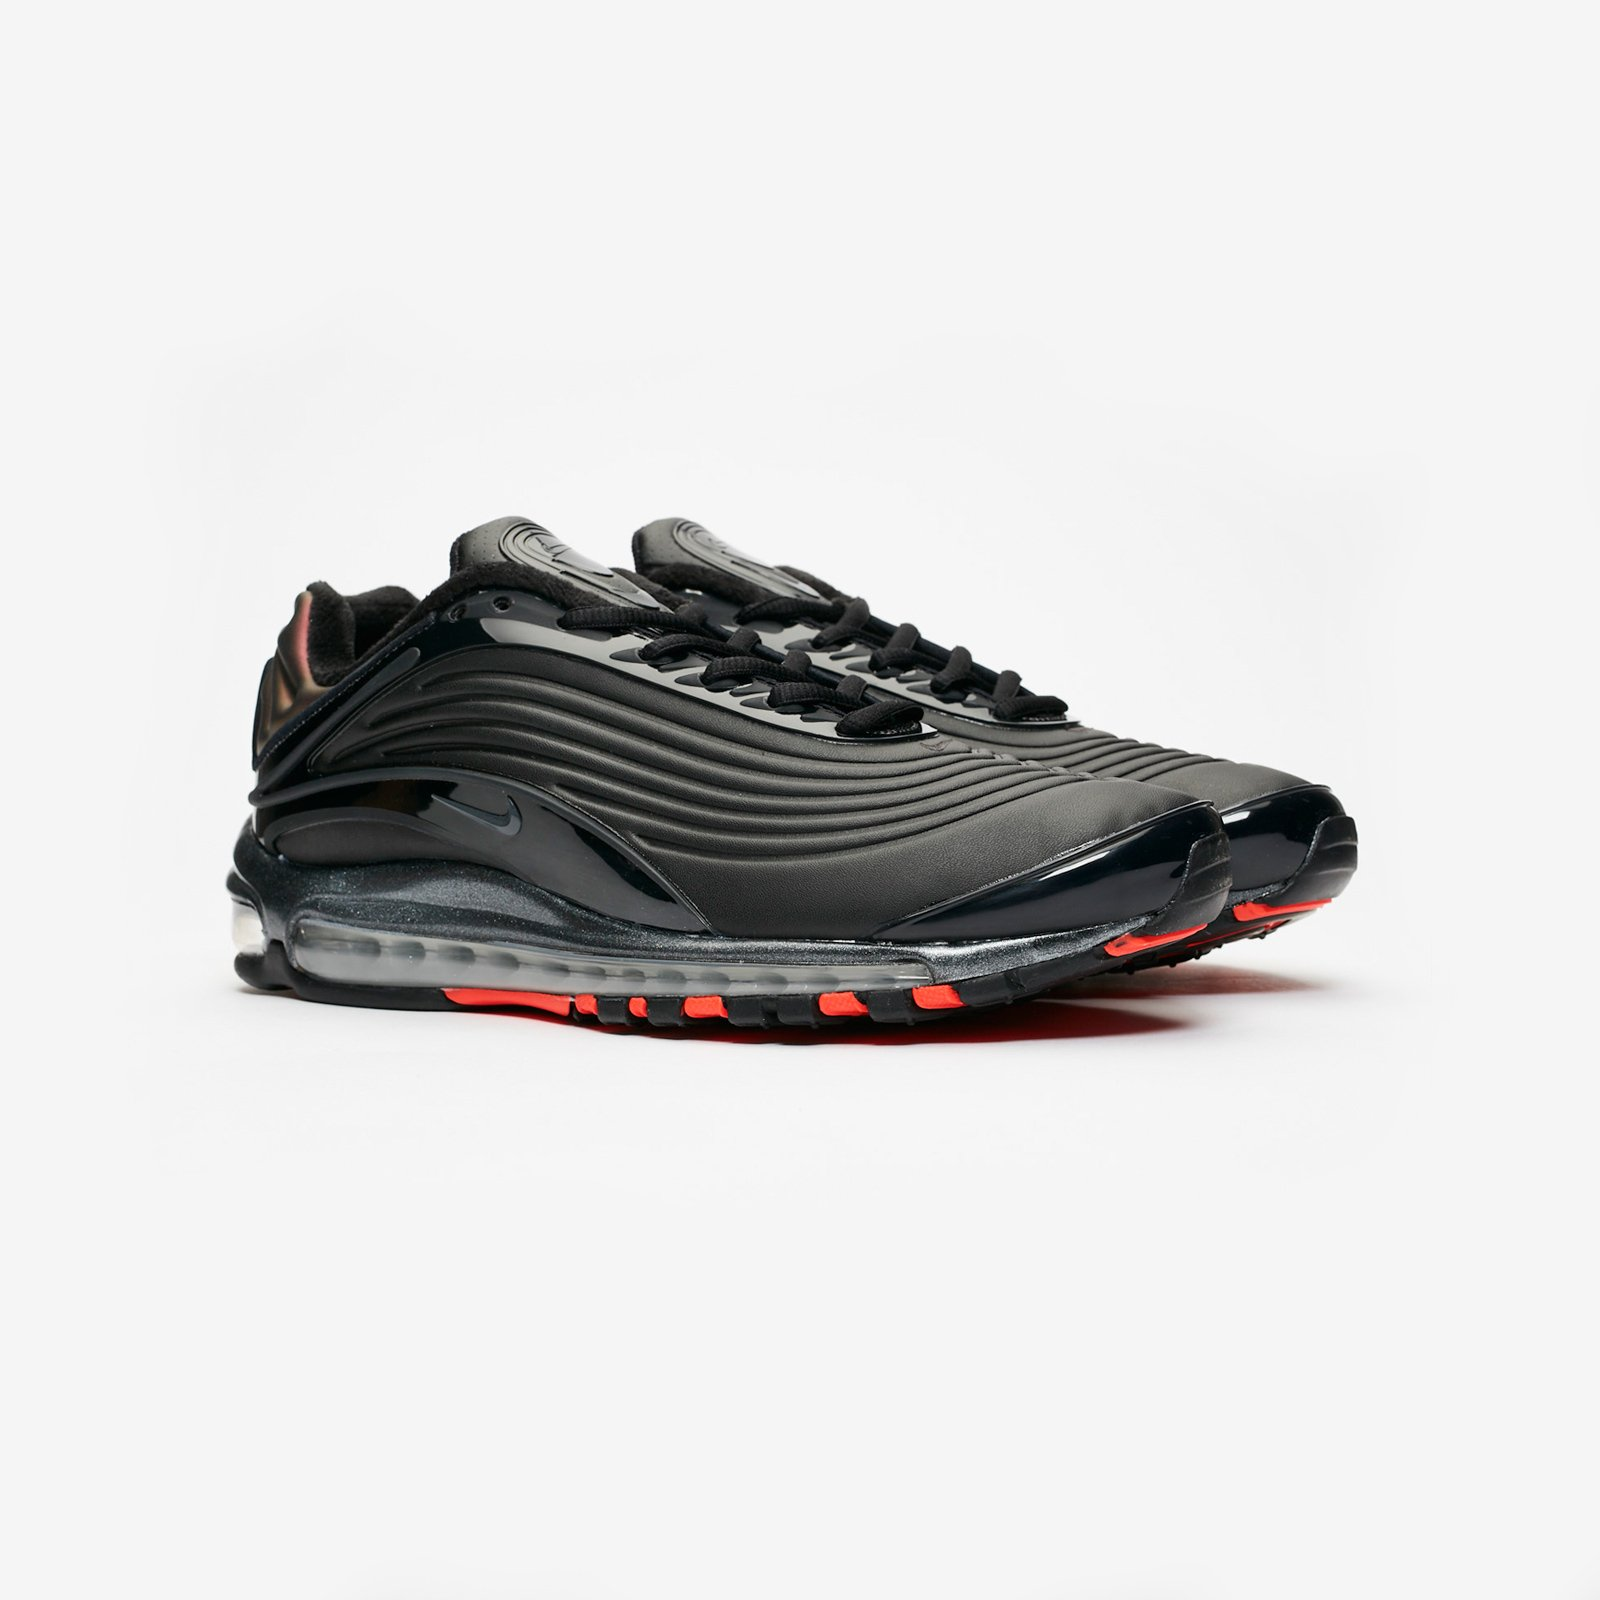 Nike Air Max Deluxe SE Ao8284 001 Sneakersnstuff